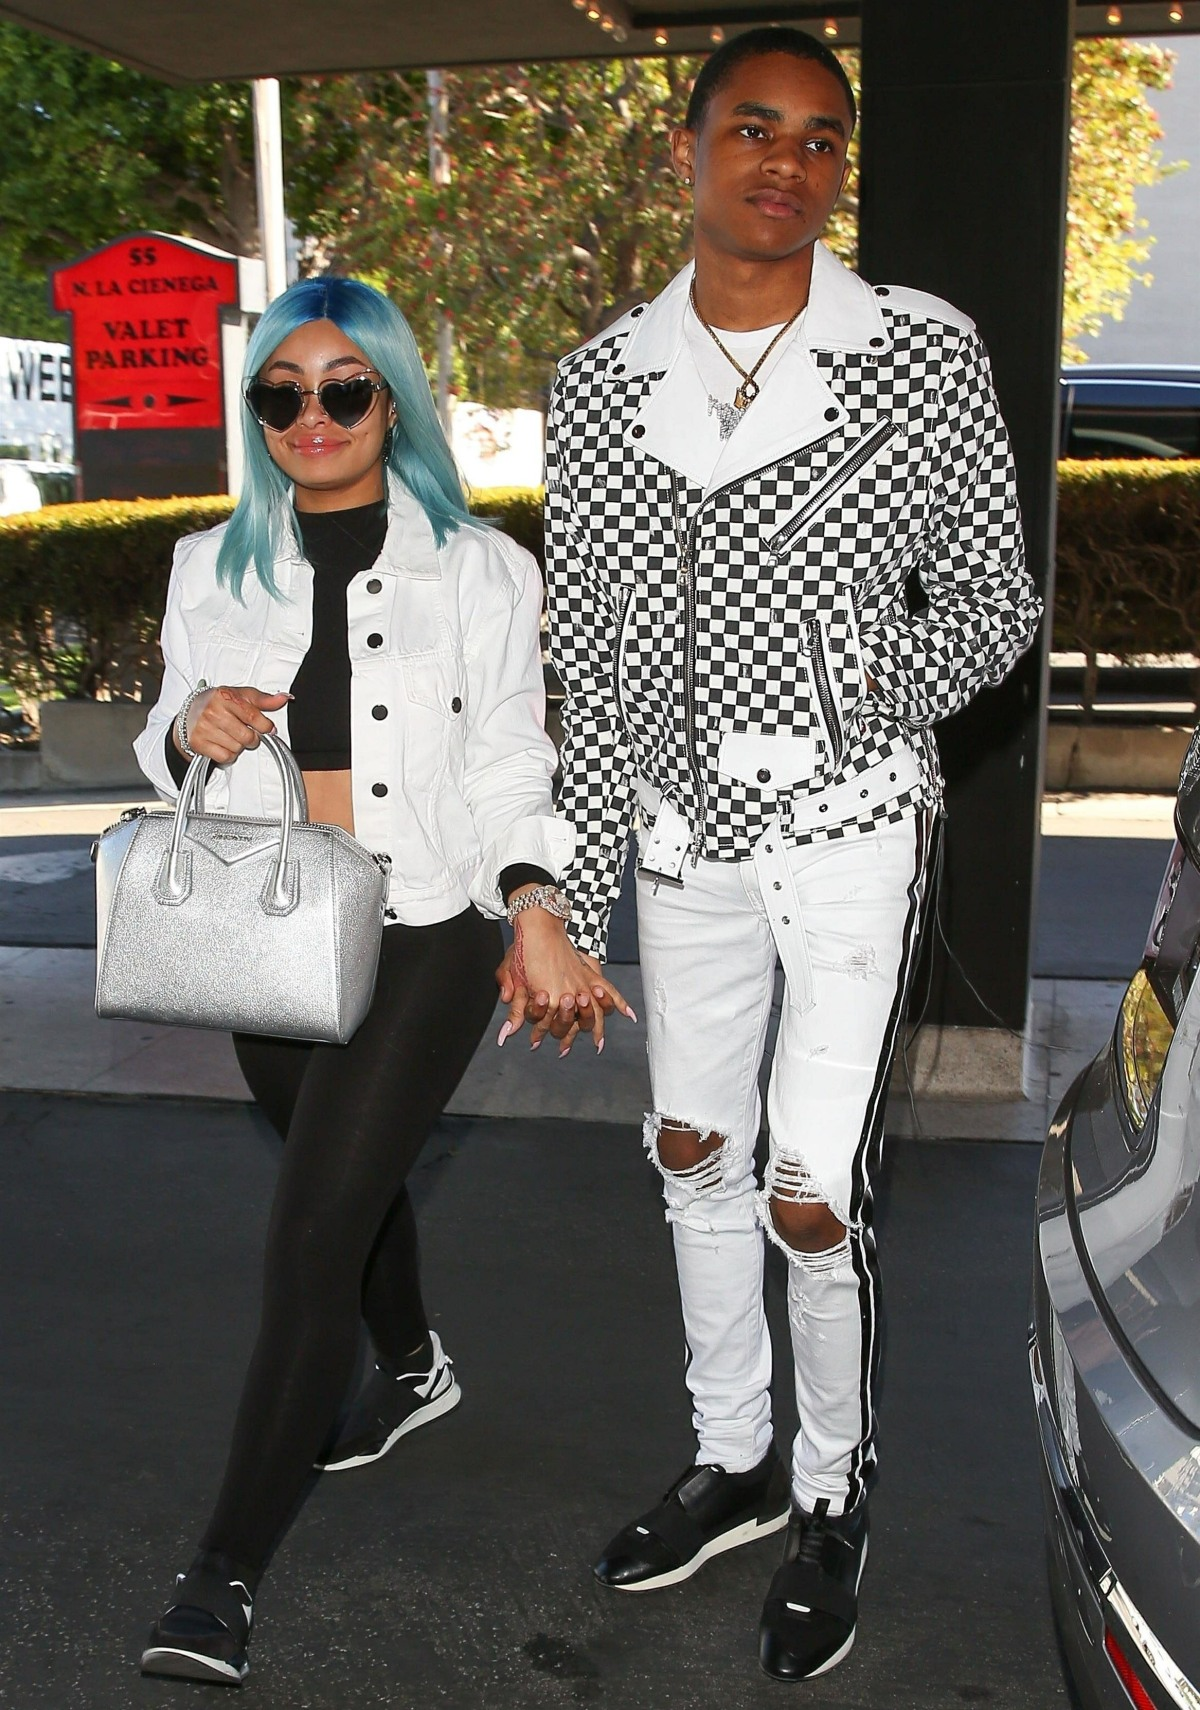 Blac Chyna and YBN Almighty Jay step out for lunch in Beverly Hills